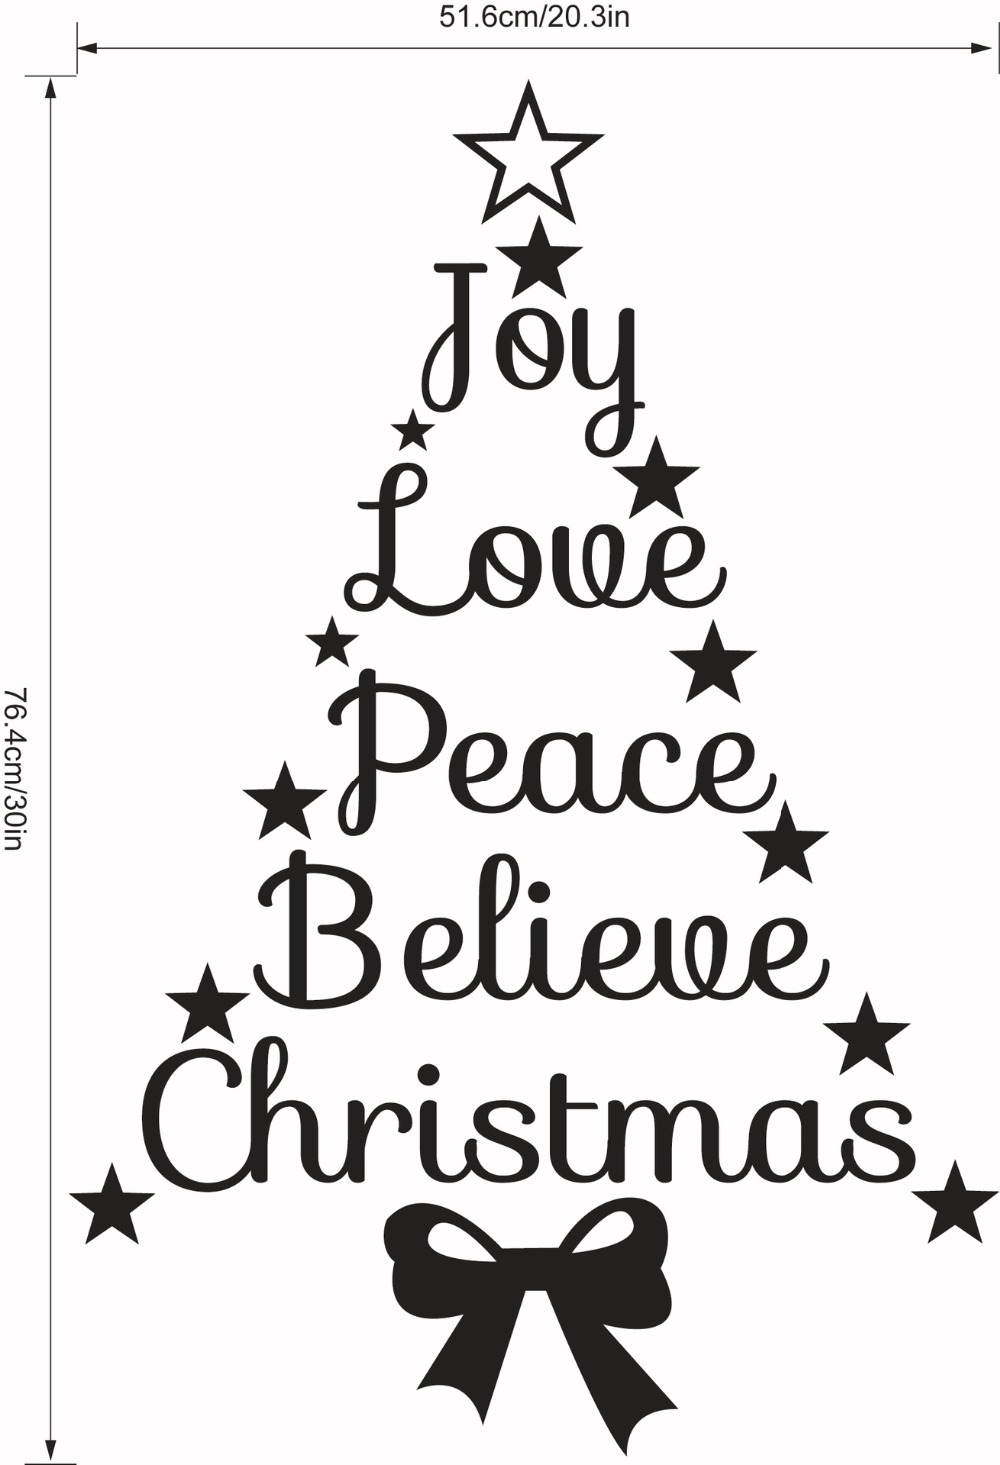 Quotes About Peace And Love Joy Love Peace Believe Christmas Quotes Stars Wall Decal Merry